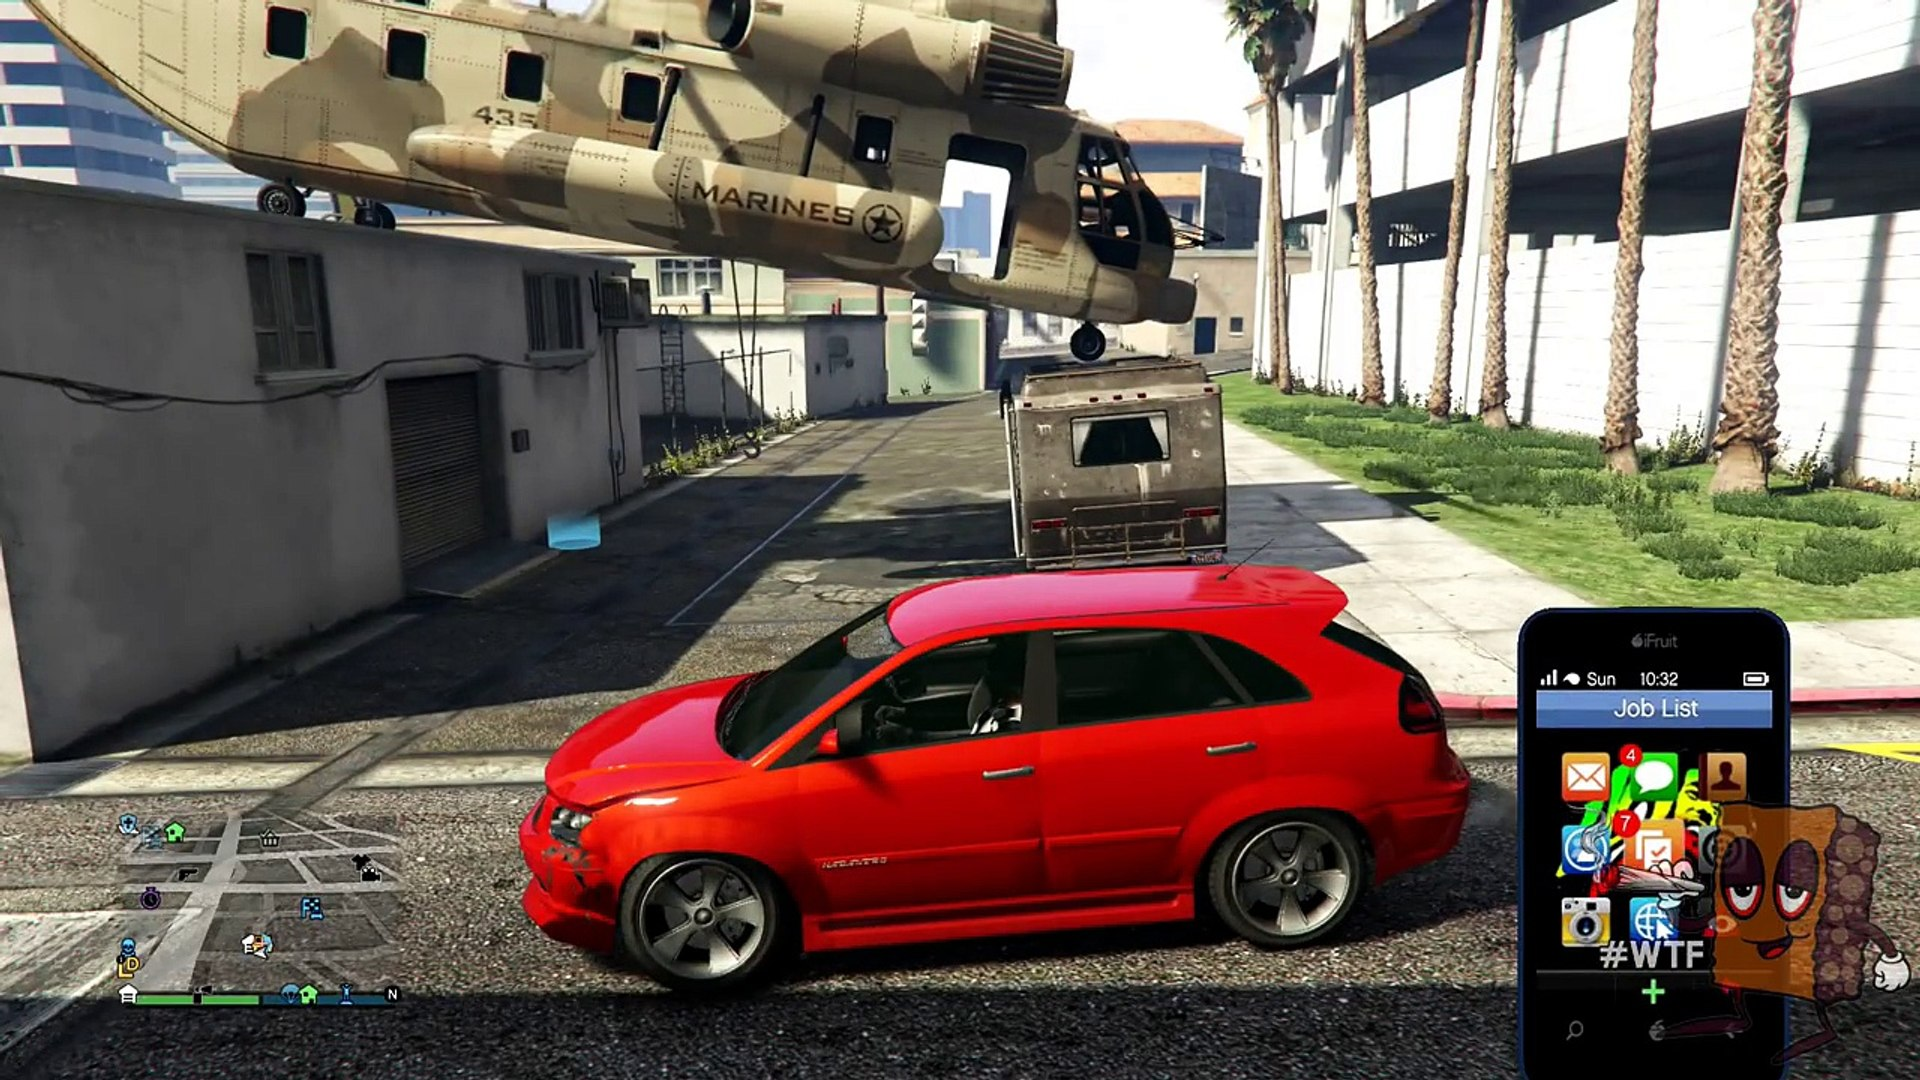 (PATCHED???) GTA 5 Glitches: Unlimited money duplicating cars patch 1.27/1.32 (GTA 5 glitches)